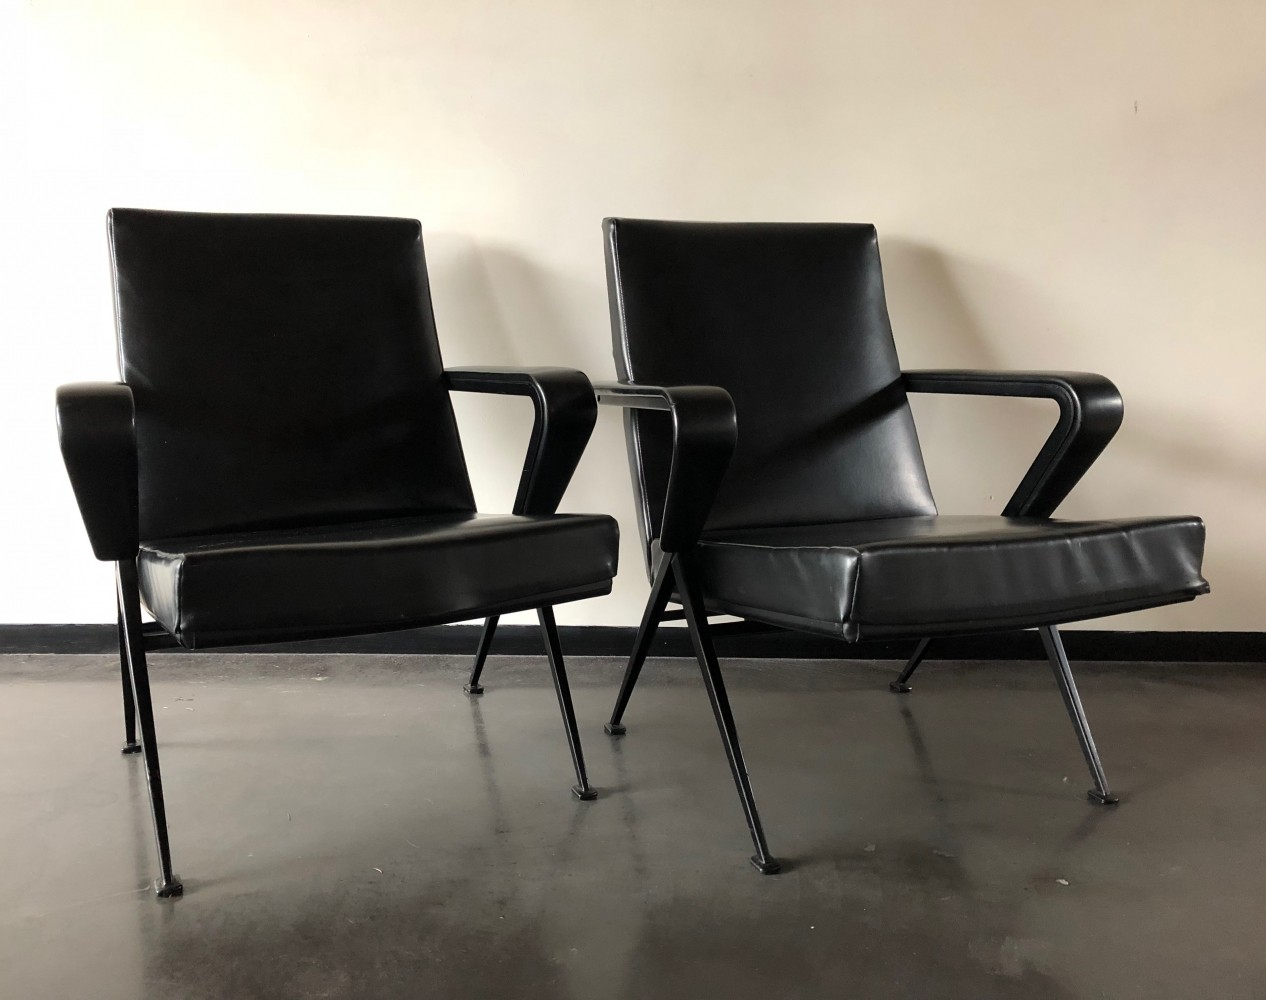 Pair of Repose lounge chairs by Friso Kramer for Ahrend de Cirkel, 1960s